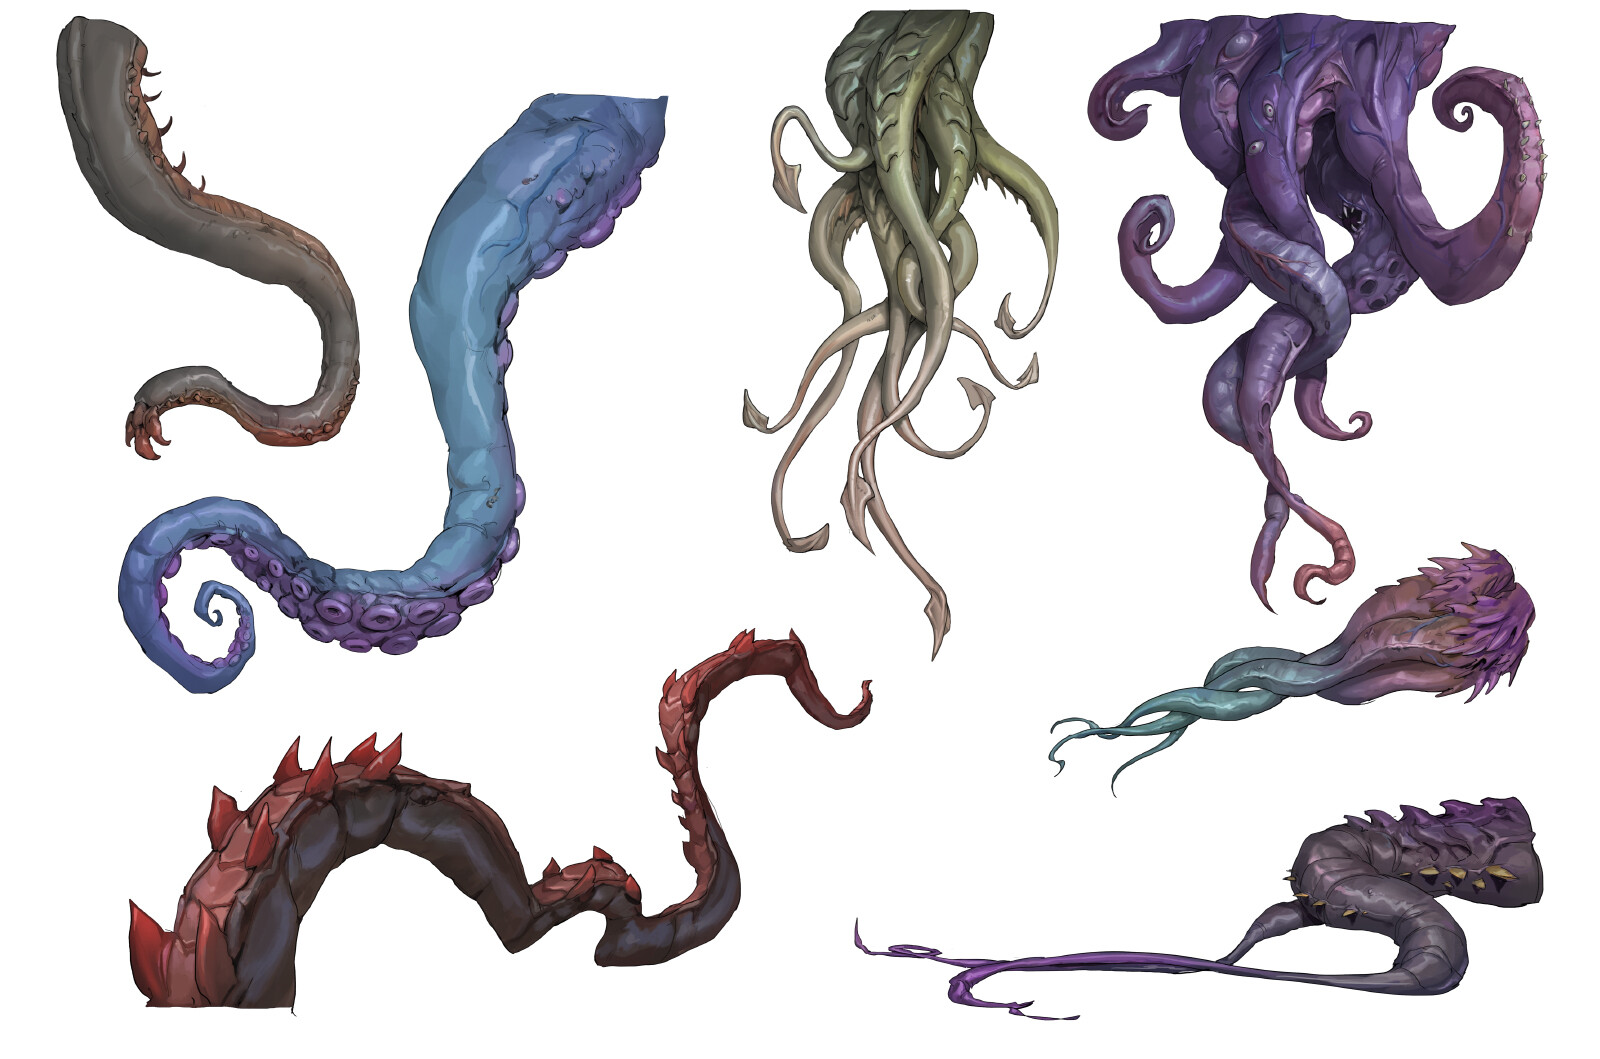 Jordy knoop lovecraft tentacles